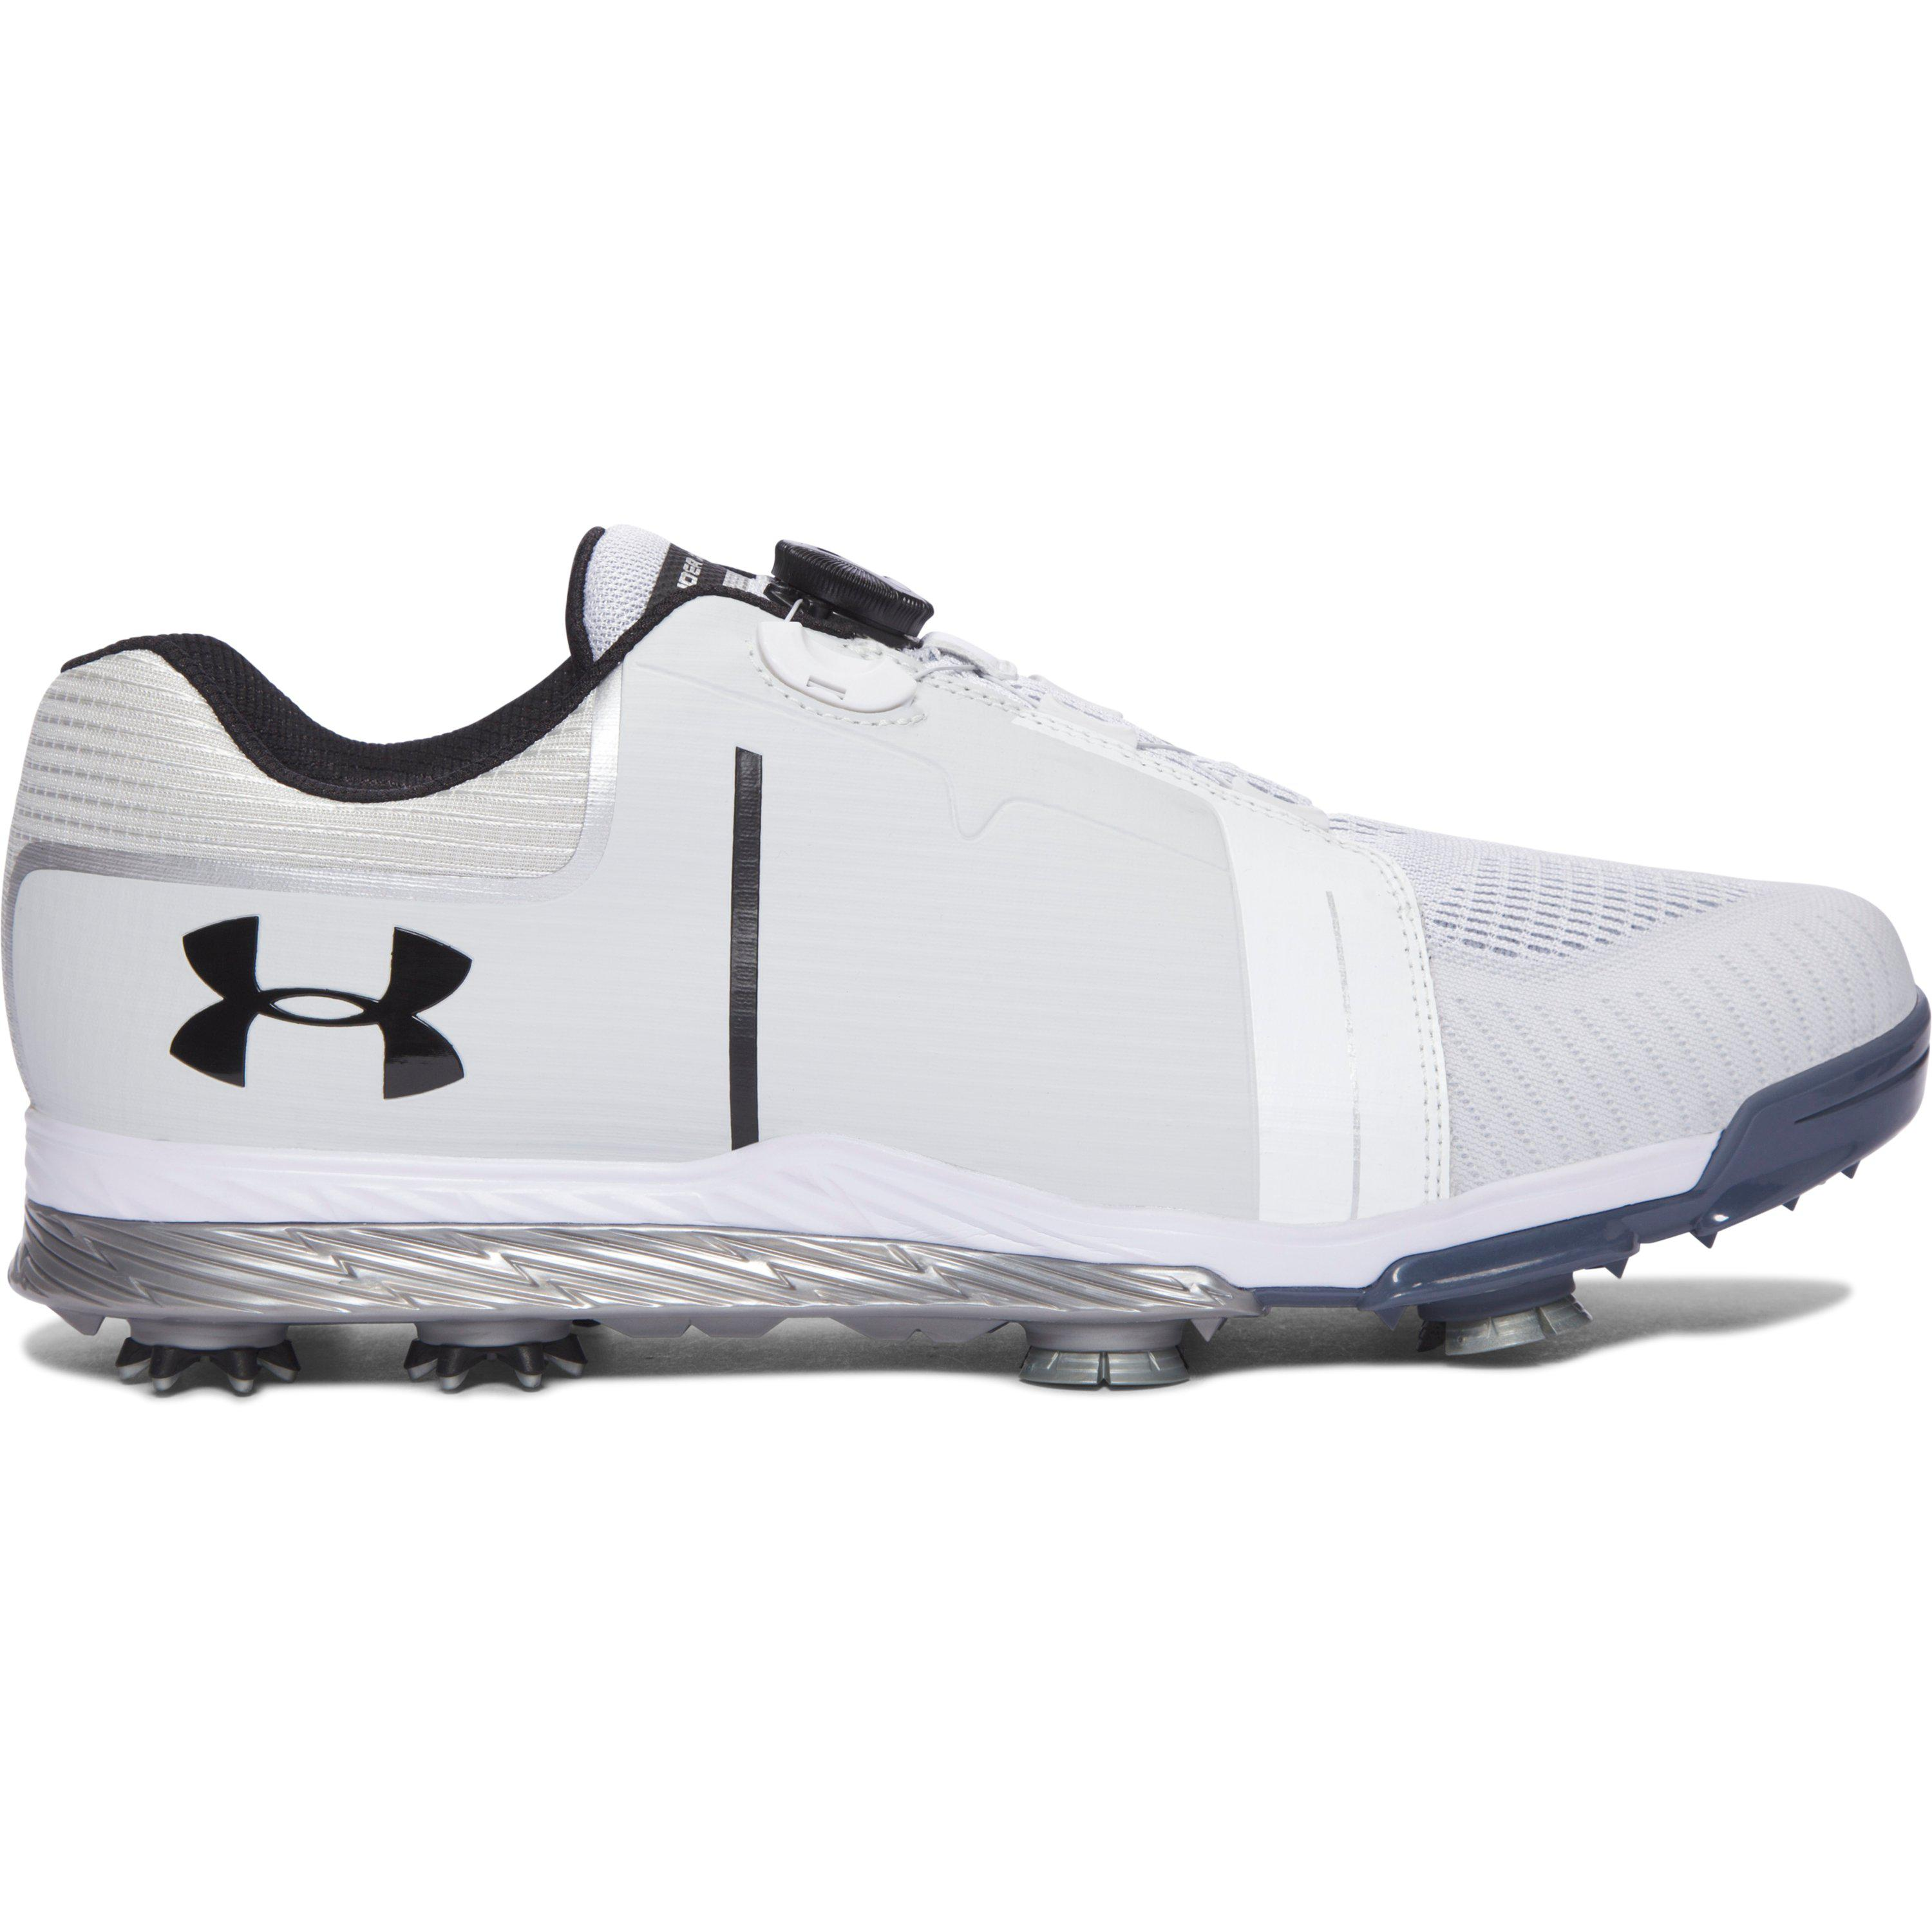 Under Armour TEMPO TRAINER - Sports shoes - black/white 7YcFDG